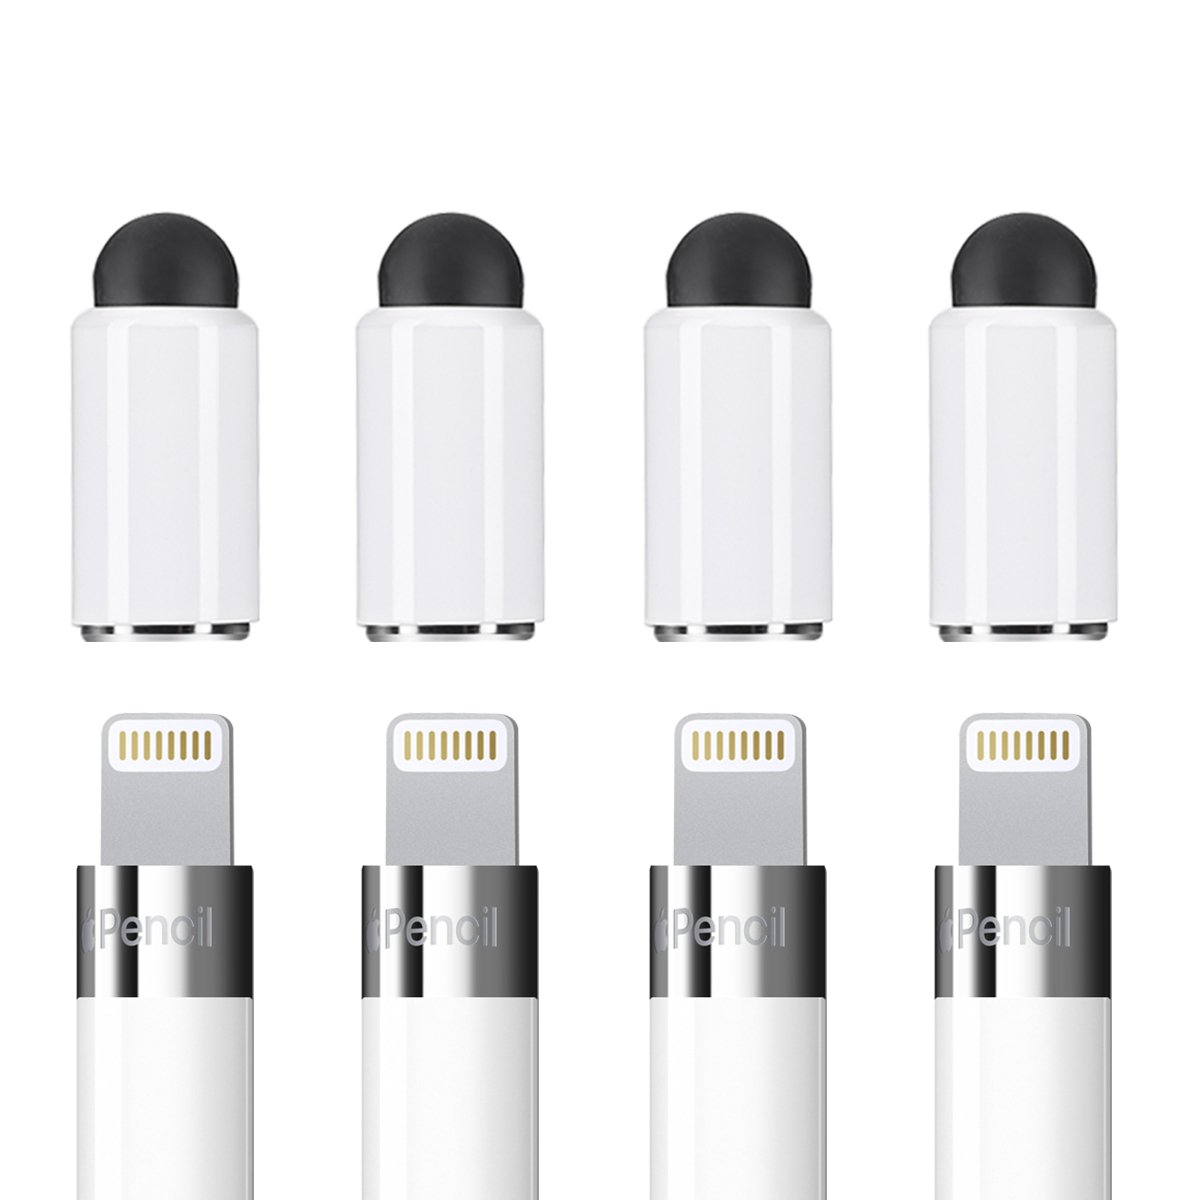 Zspeed Pencil Cap Replacement for Apple iPad Pencil, 2 in 1 Stylus, Rubber Replacement Caps as Stylus Pen for All Touch Screen Tablets/Cell Phones (Pack of 4)